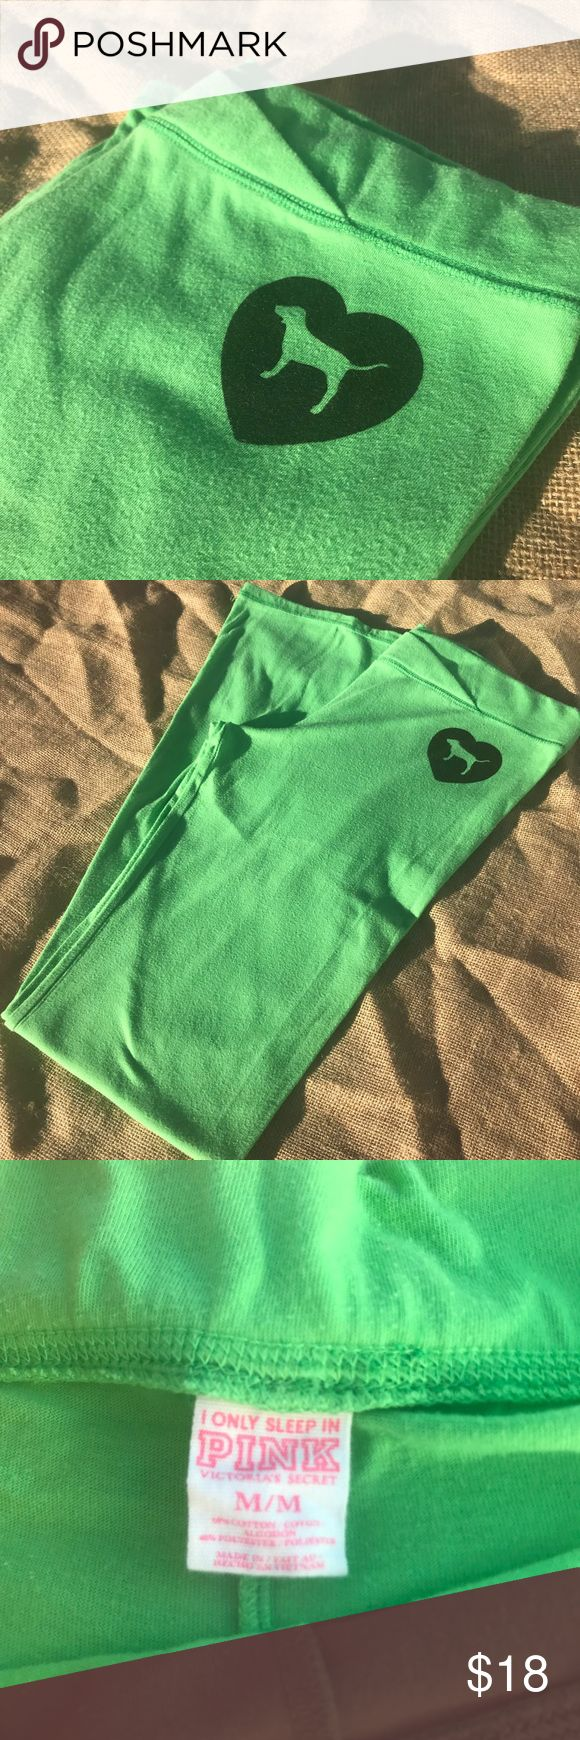 🍏 Victoria Secret lime green leggings 🍏 Size Medium. EUC. Lime green leggings that could be used for working out or sleeping in. They are stretchy, soft material pants. Has a heart on left hip with VS dog 🐶 some piling in between thighs, cause let's face it. Thick thighs save lives. No holes tears or stains. Make them yours today! PINK Victoria's Secret Pants Leggings